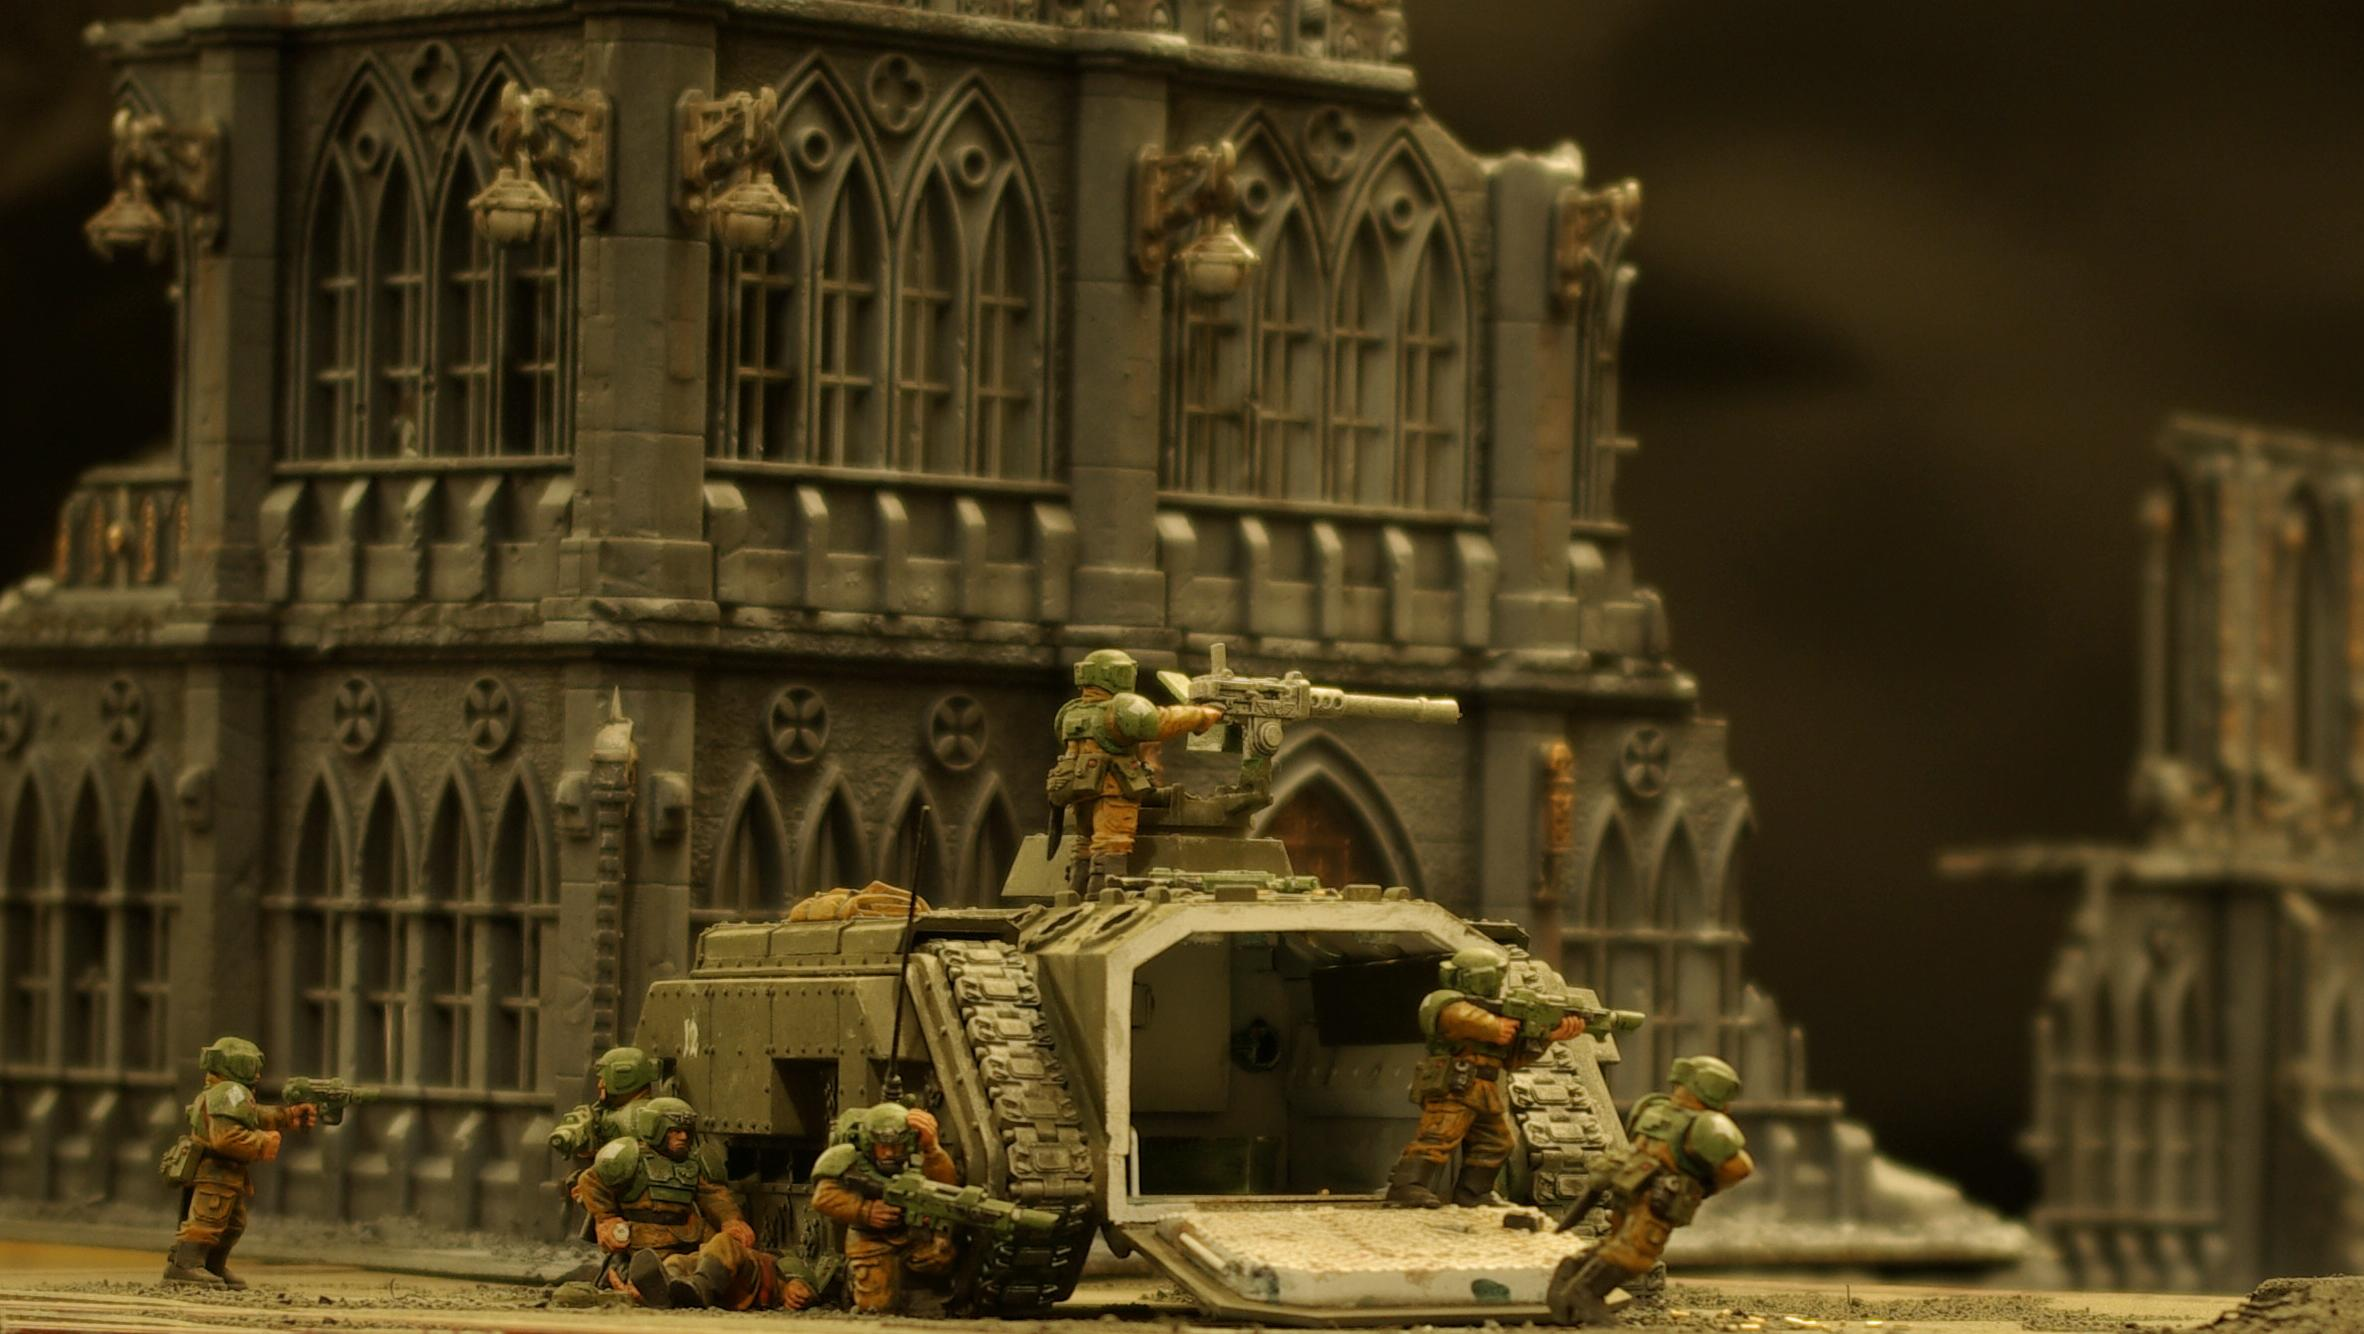 Action, Awesome, Chimera, Cities Of Death, Imperial Guard, Medic, Pegasus, Warhammer 40,000